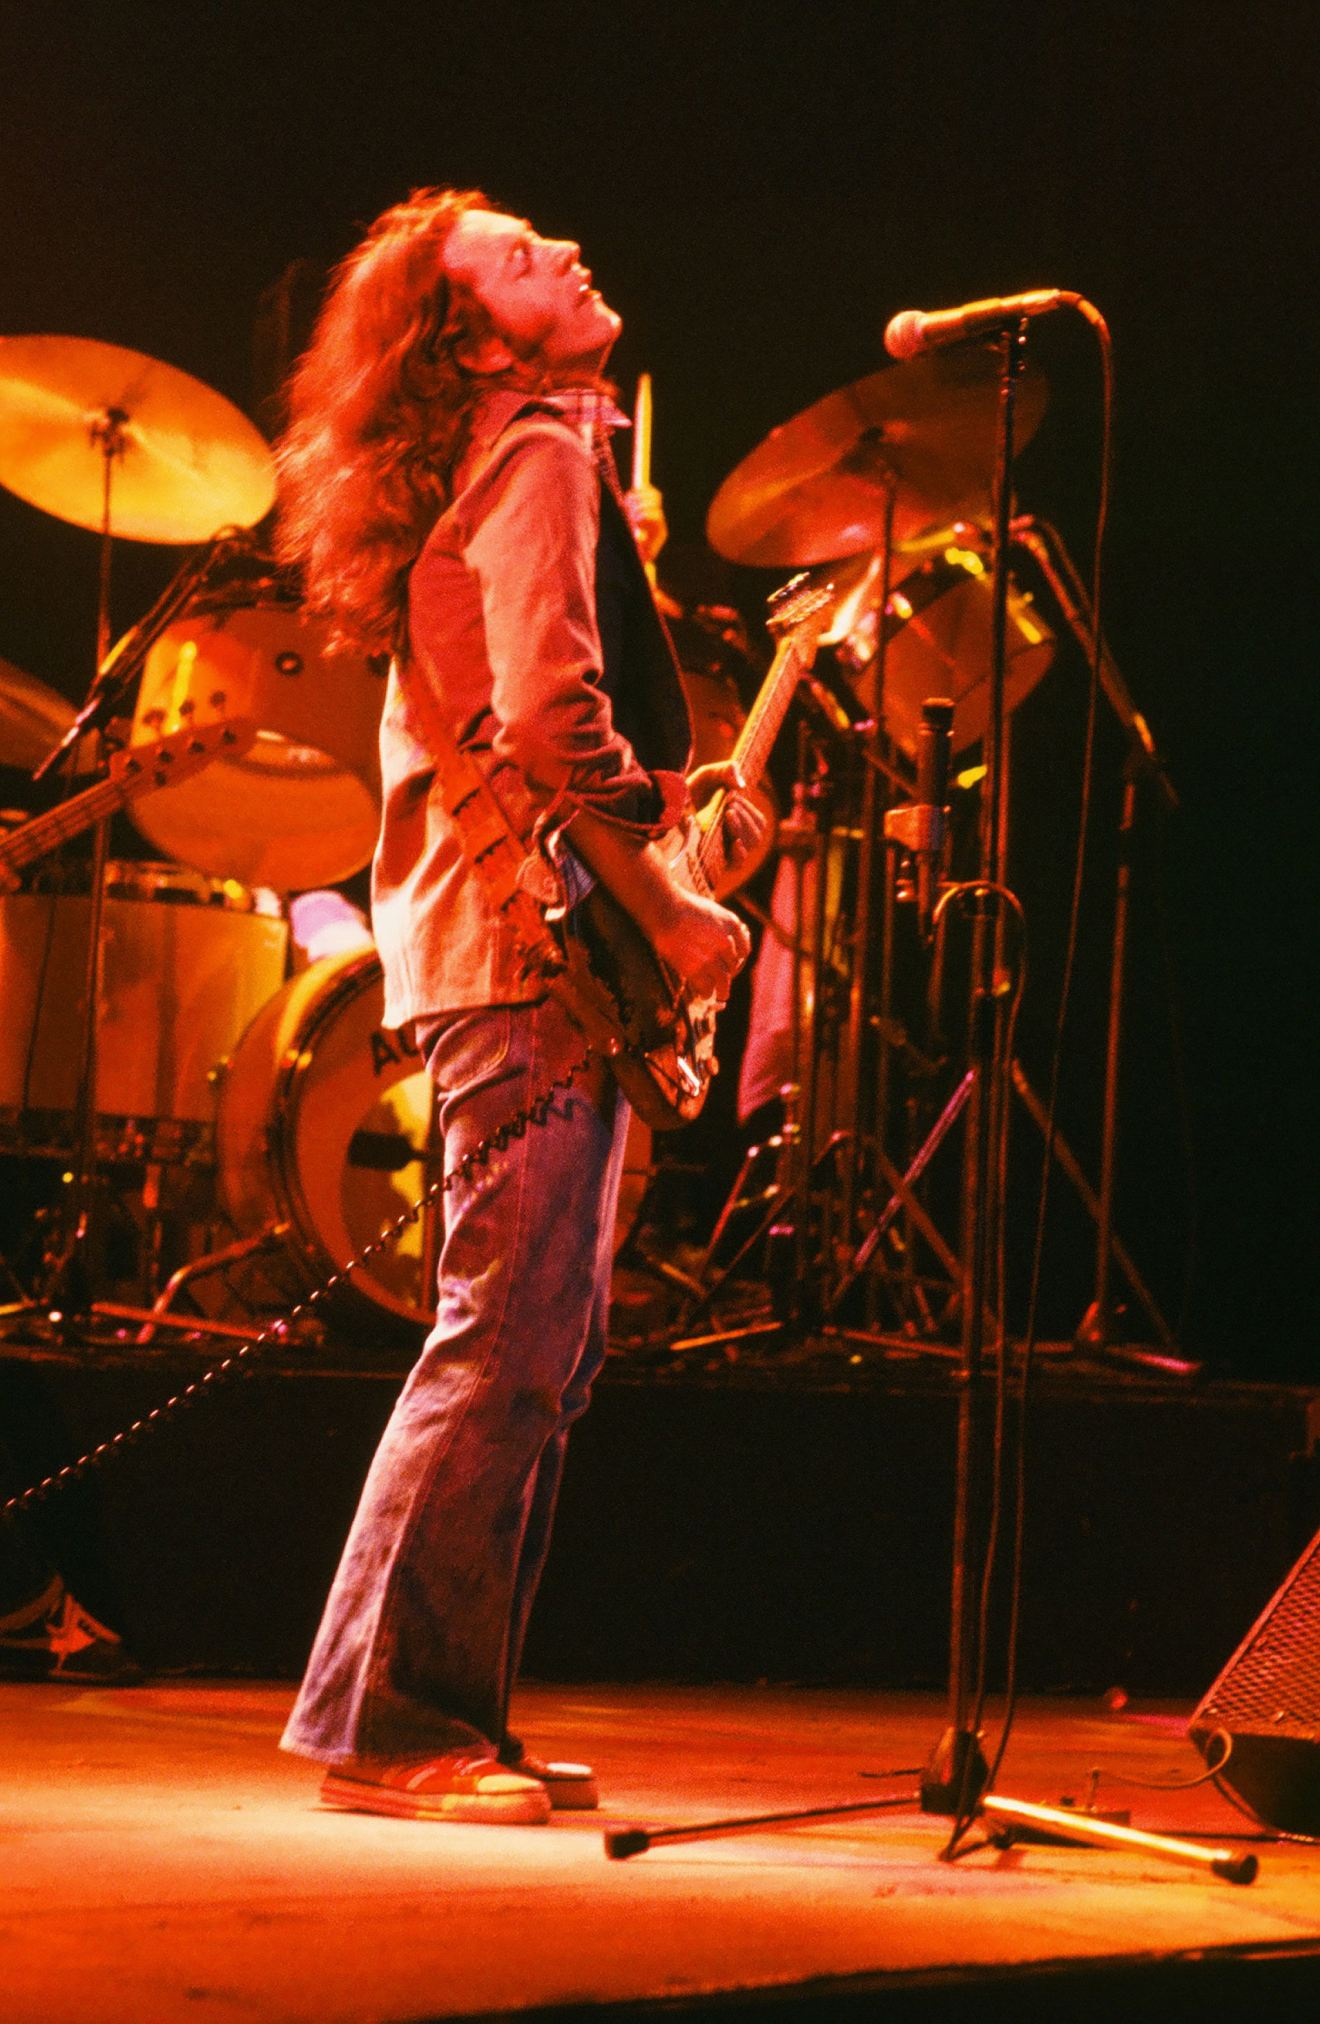 Photos en vrac - Page 30 Rory-gallagher-c1979-manchester-by-steve-smith-18